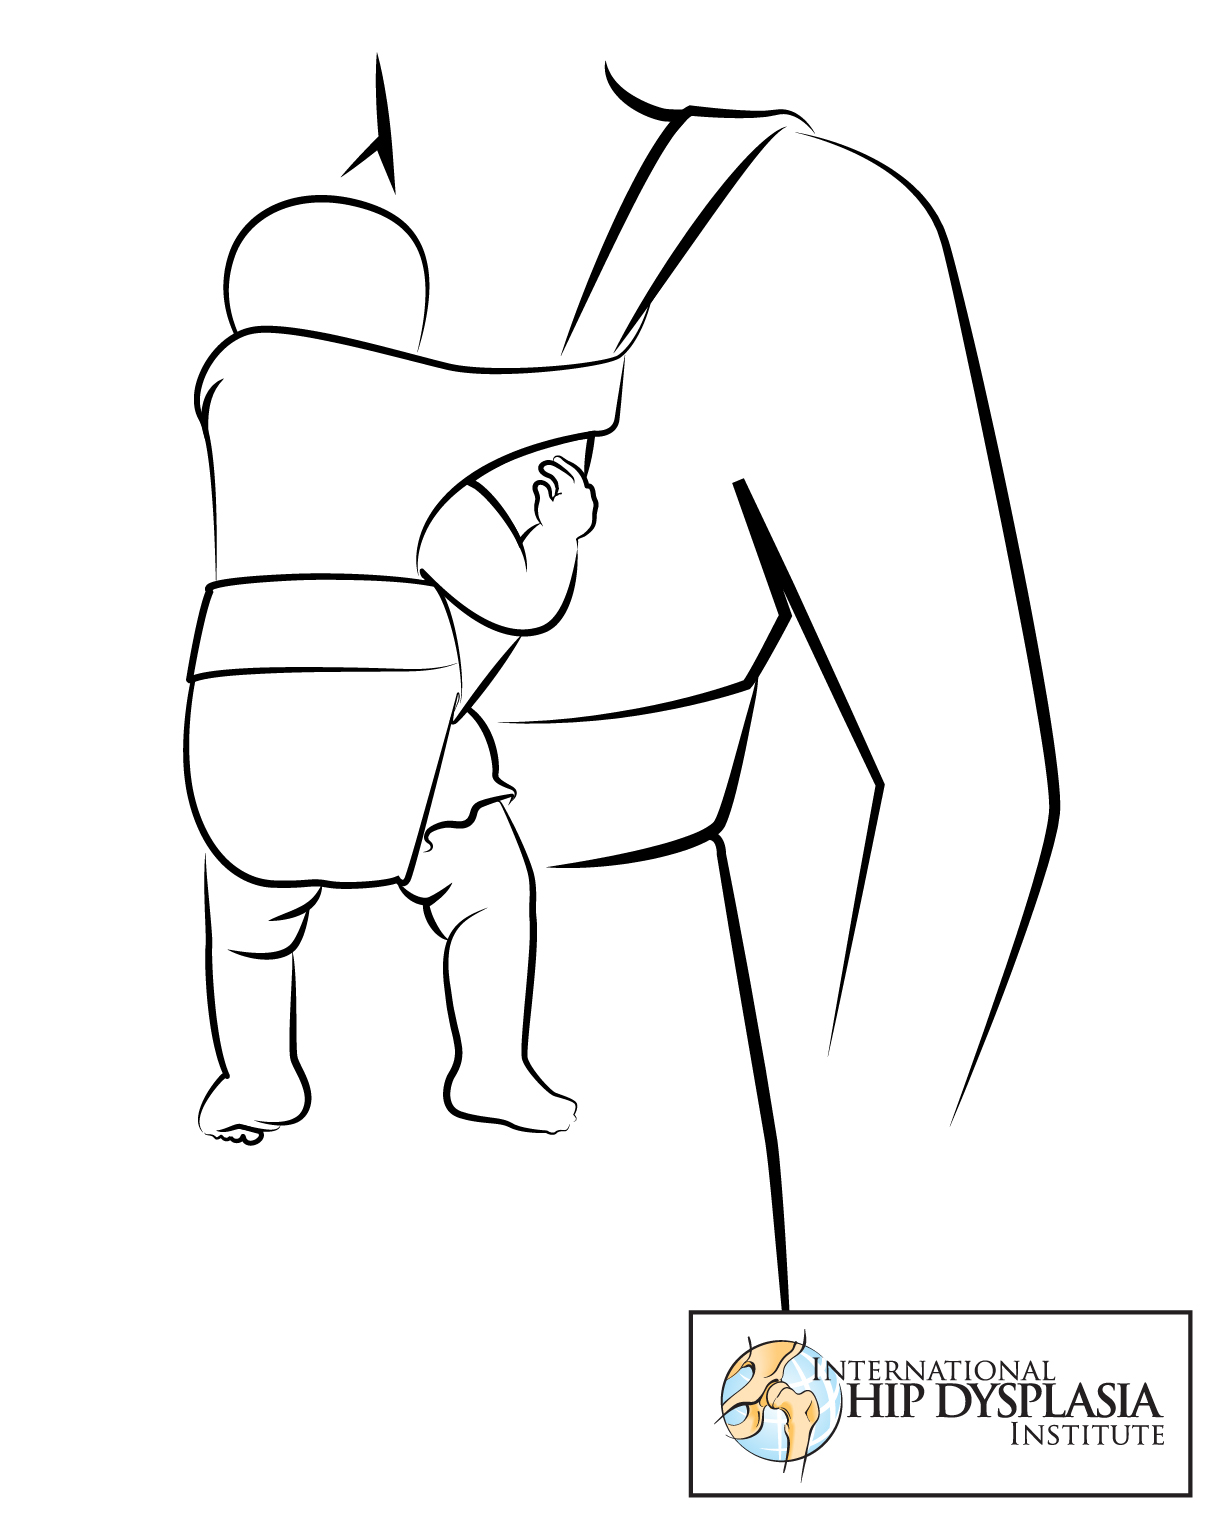 baby carrier not recommended